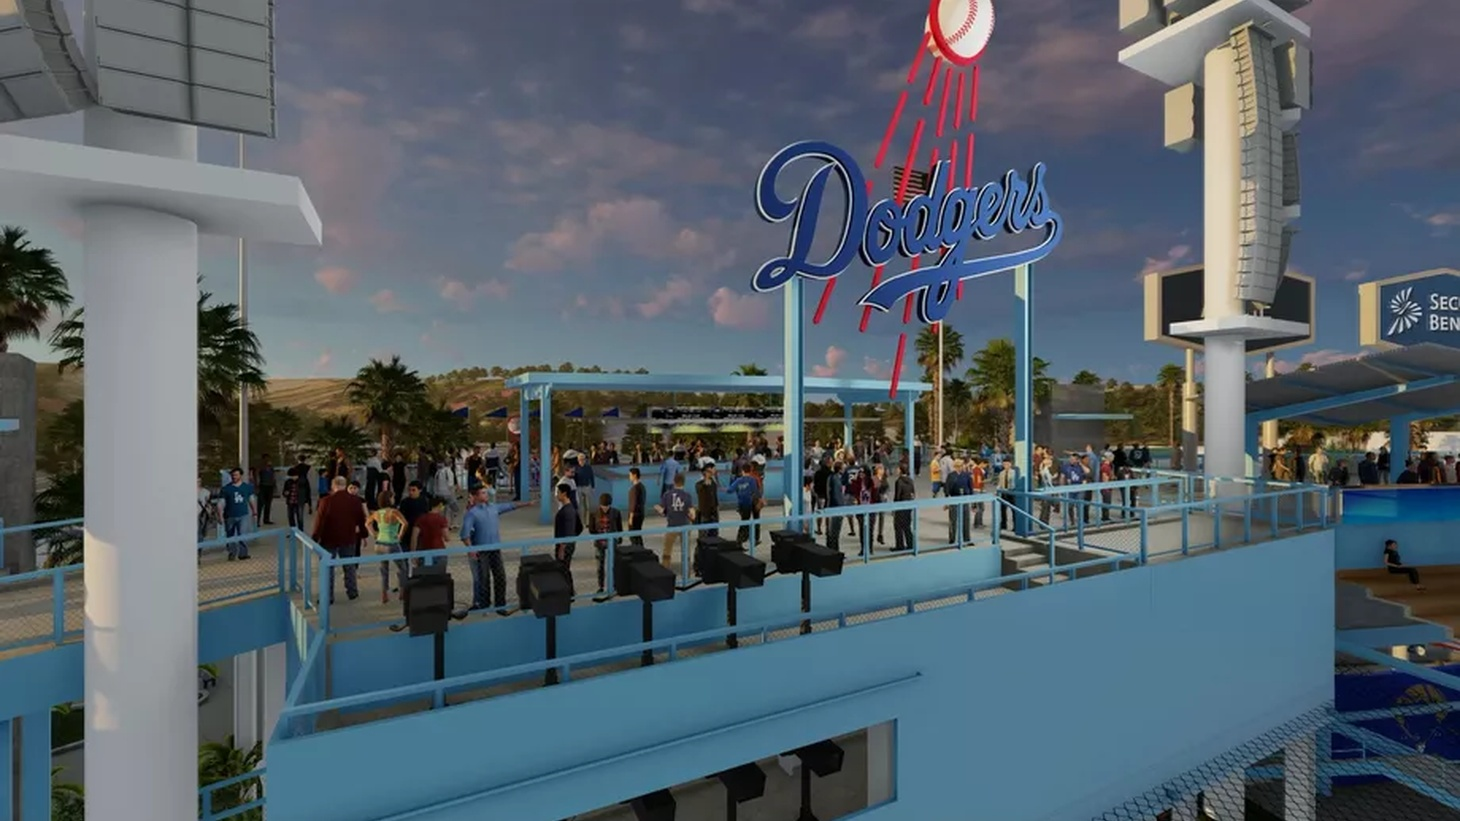 Dodger Stadium will receive $100 million in renovations, including standing room in the outfield.